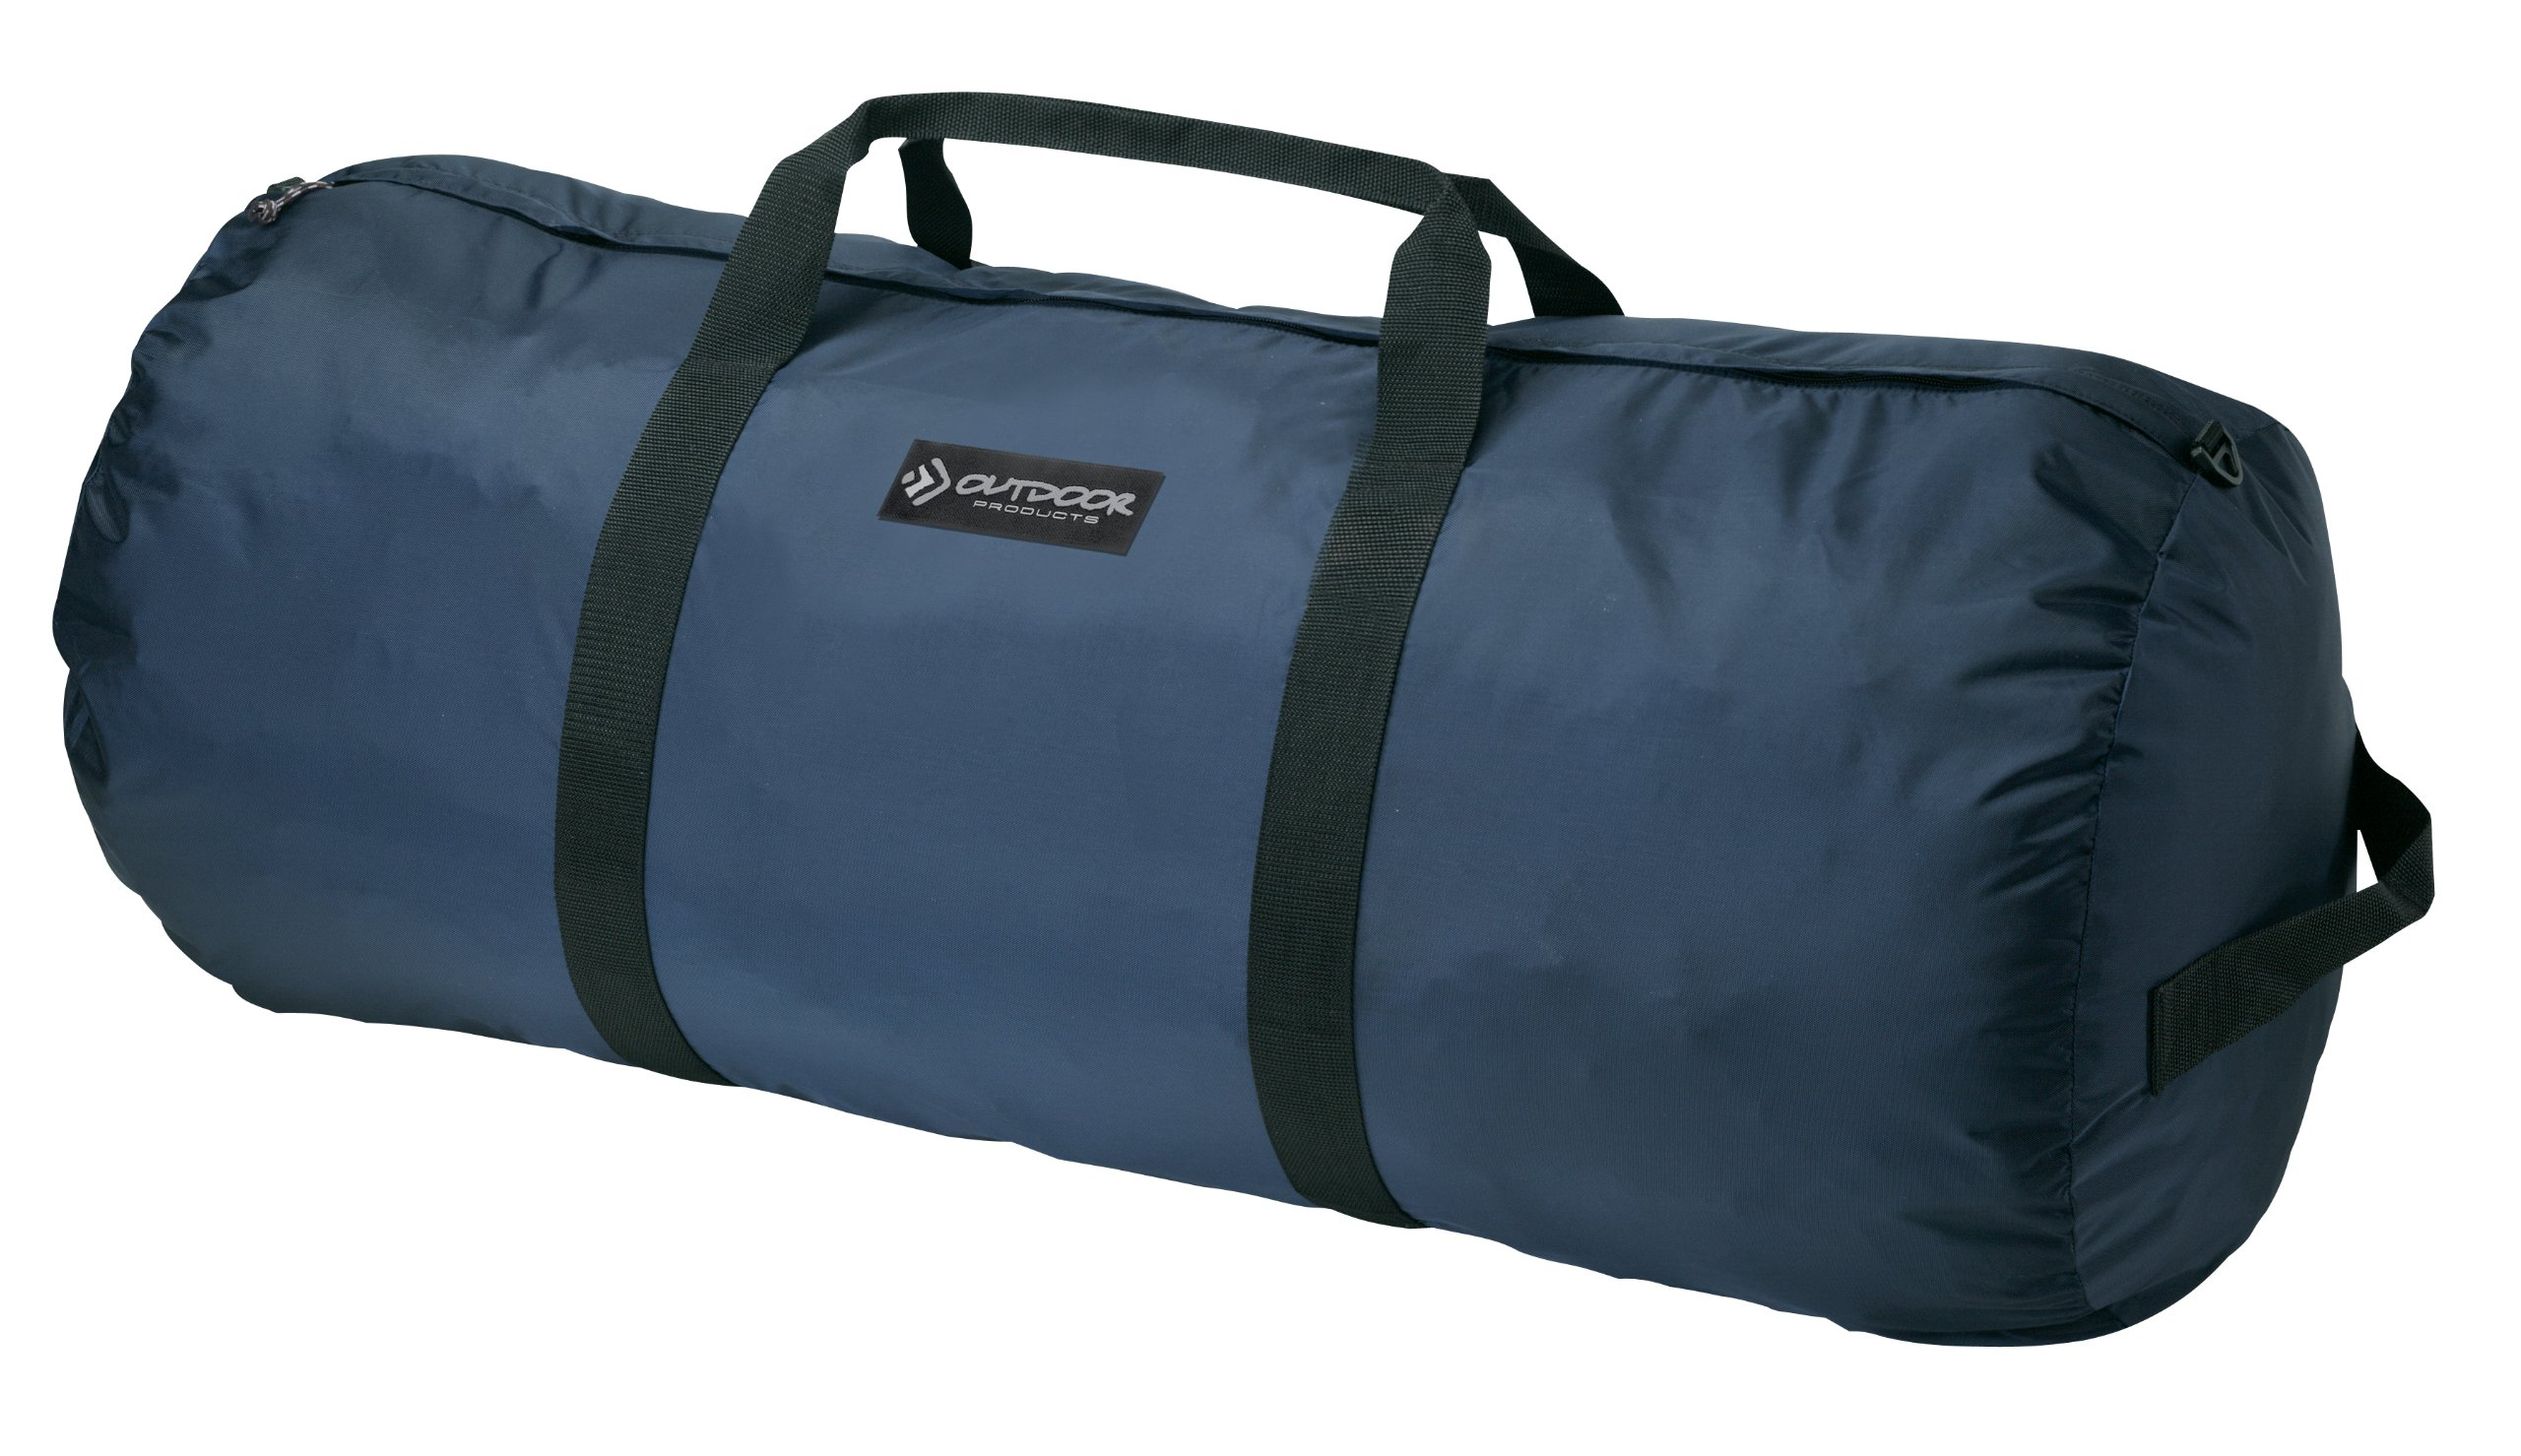 Outdoor Products Deluxe Duffle, Small, Black